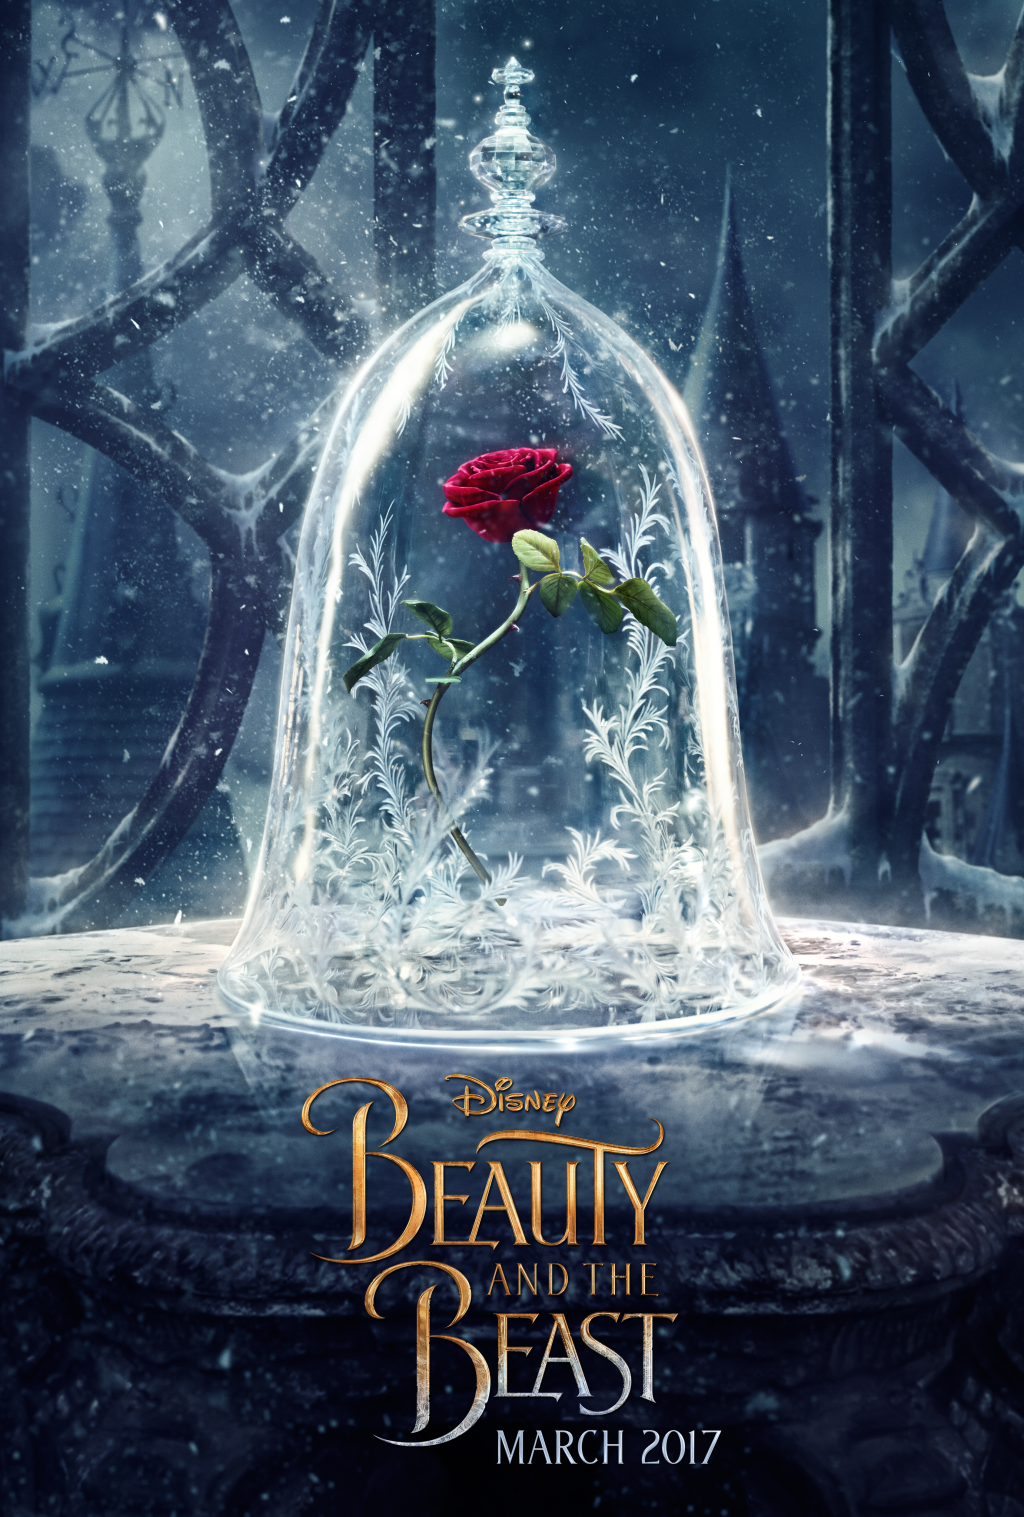 Beauty and the Beast remake tackles classic